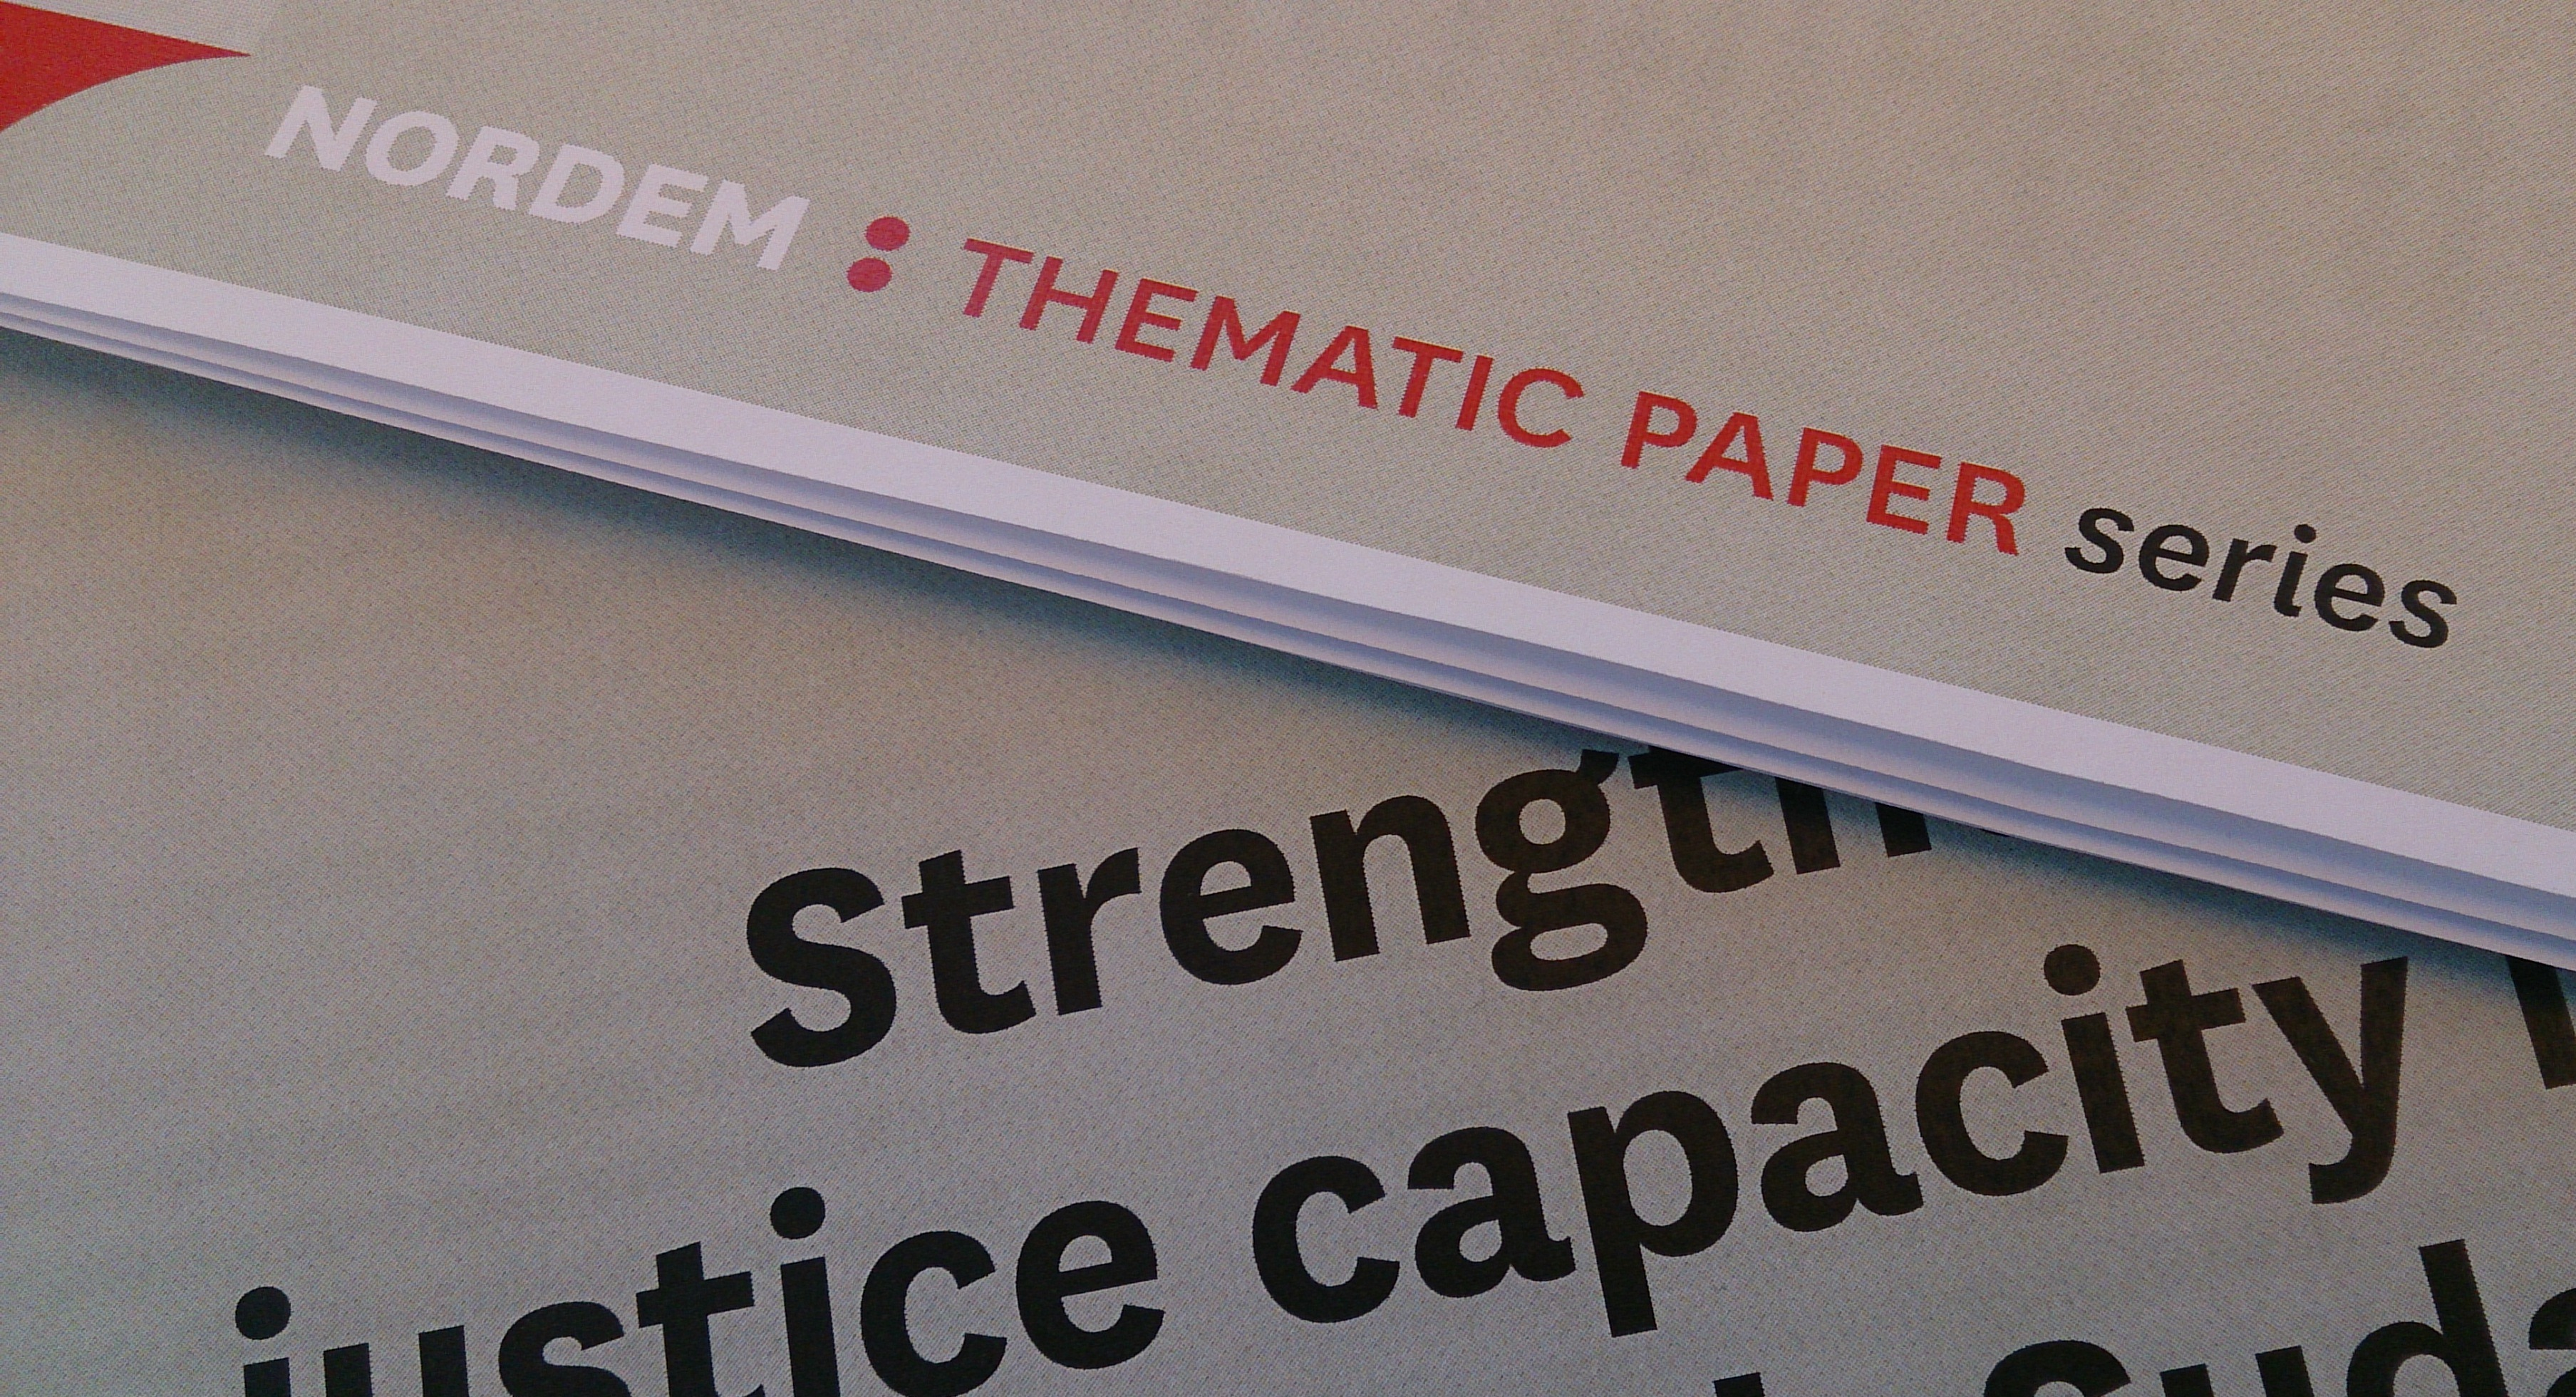 thematic paper